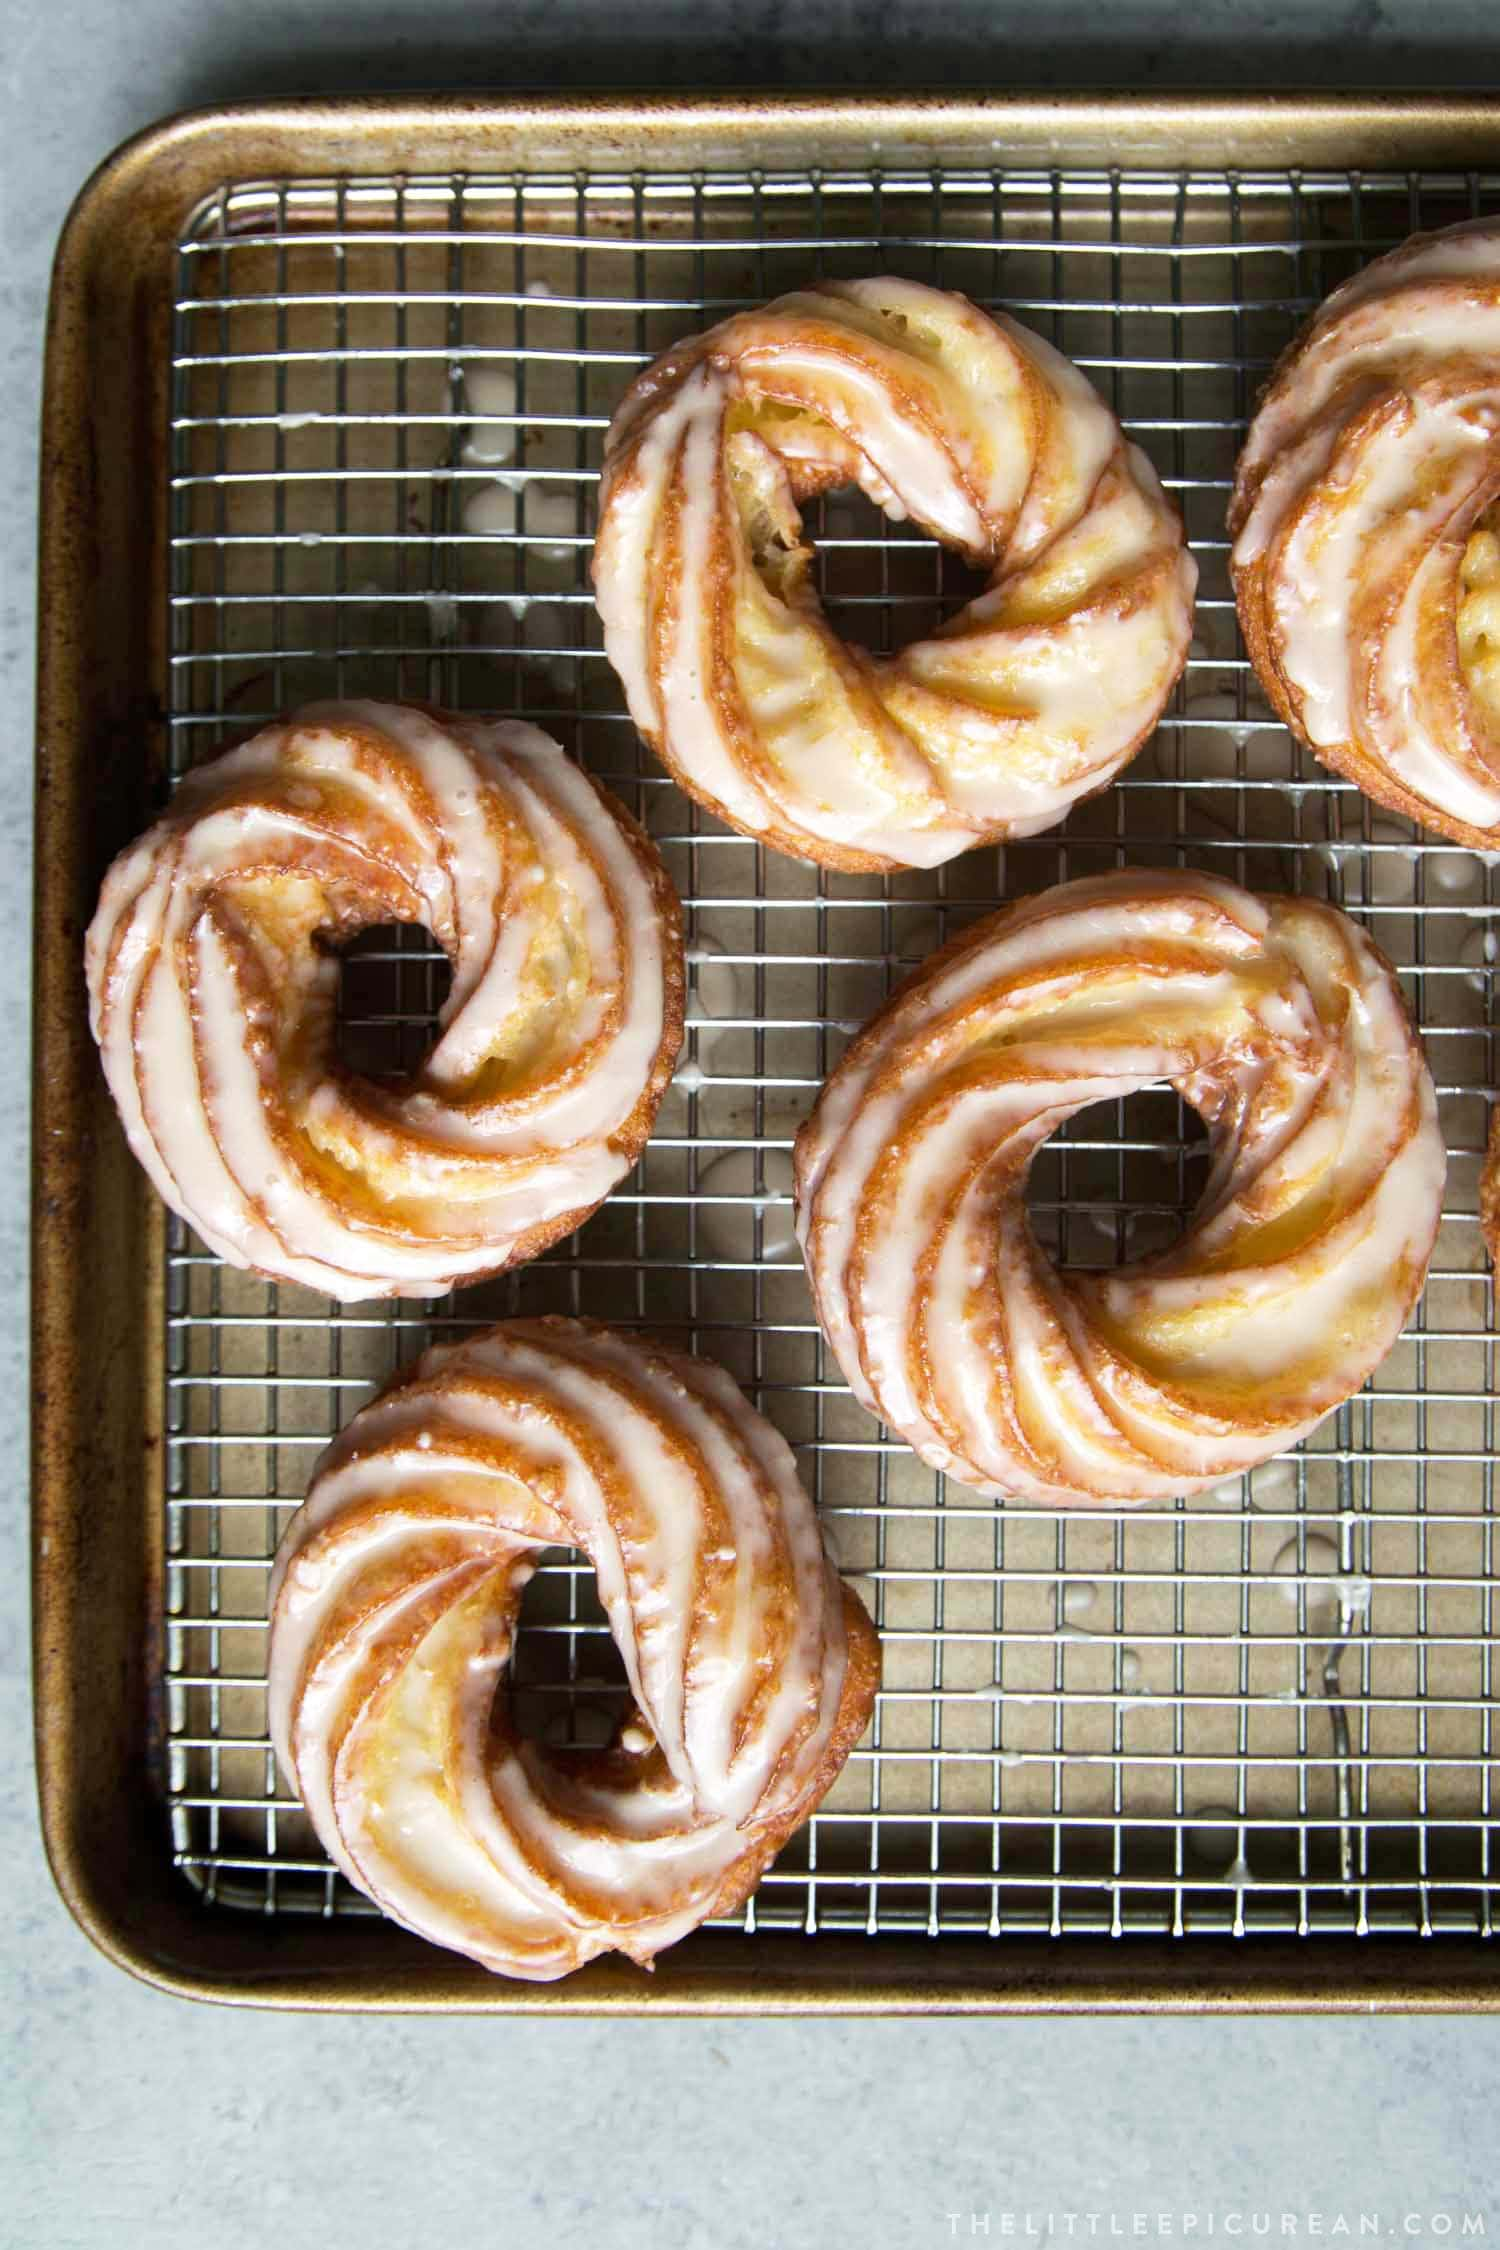 Maple Glazed Crullers